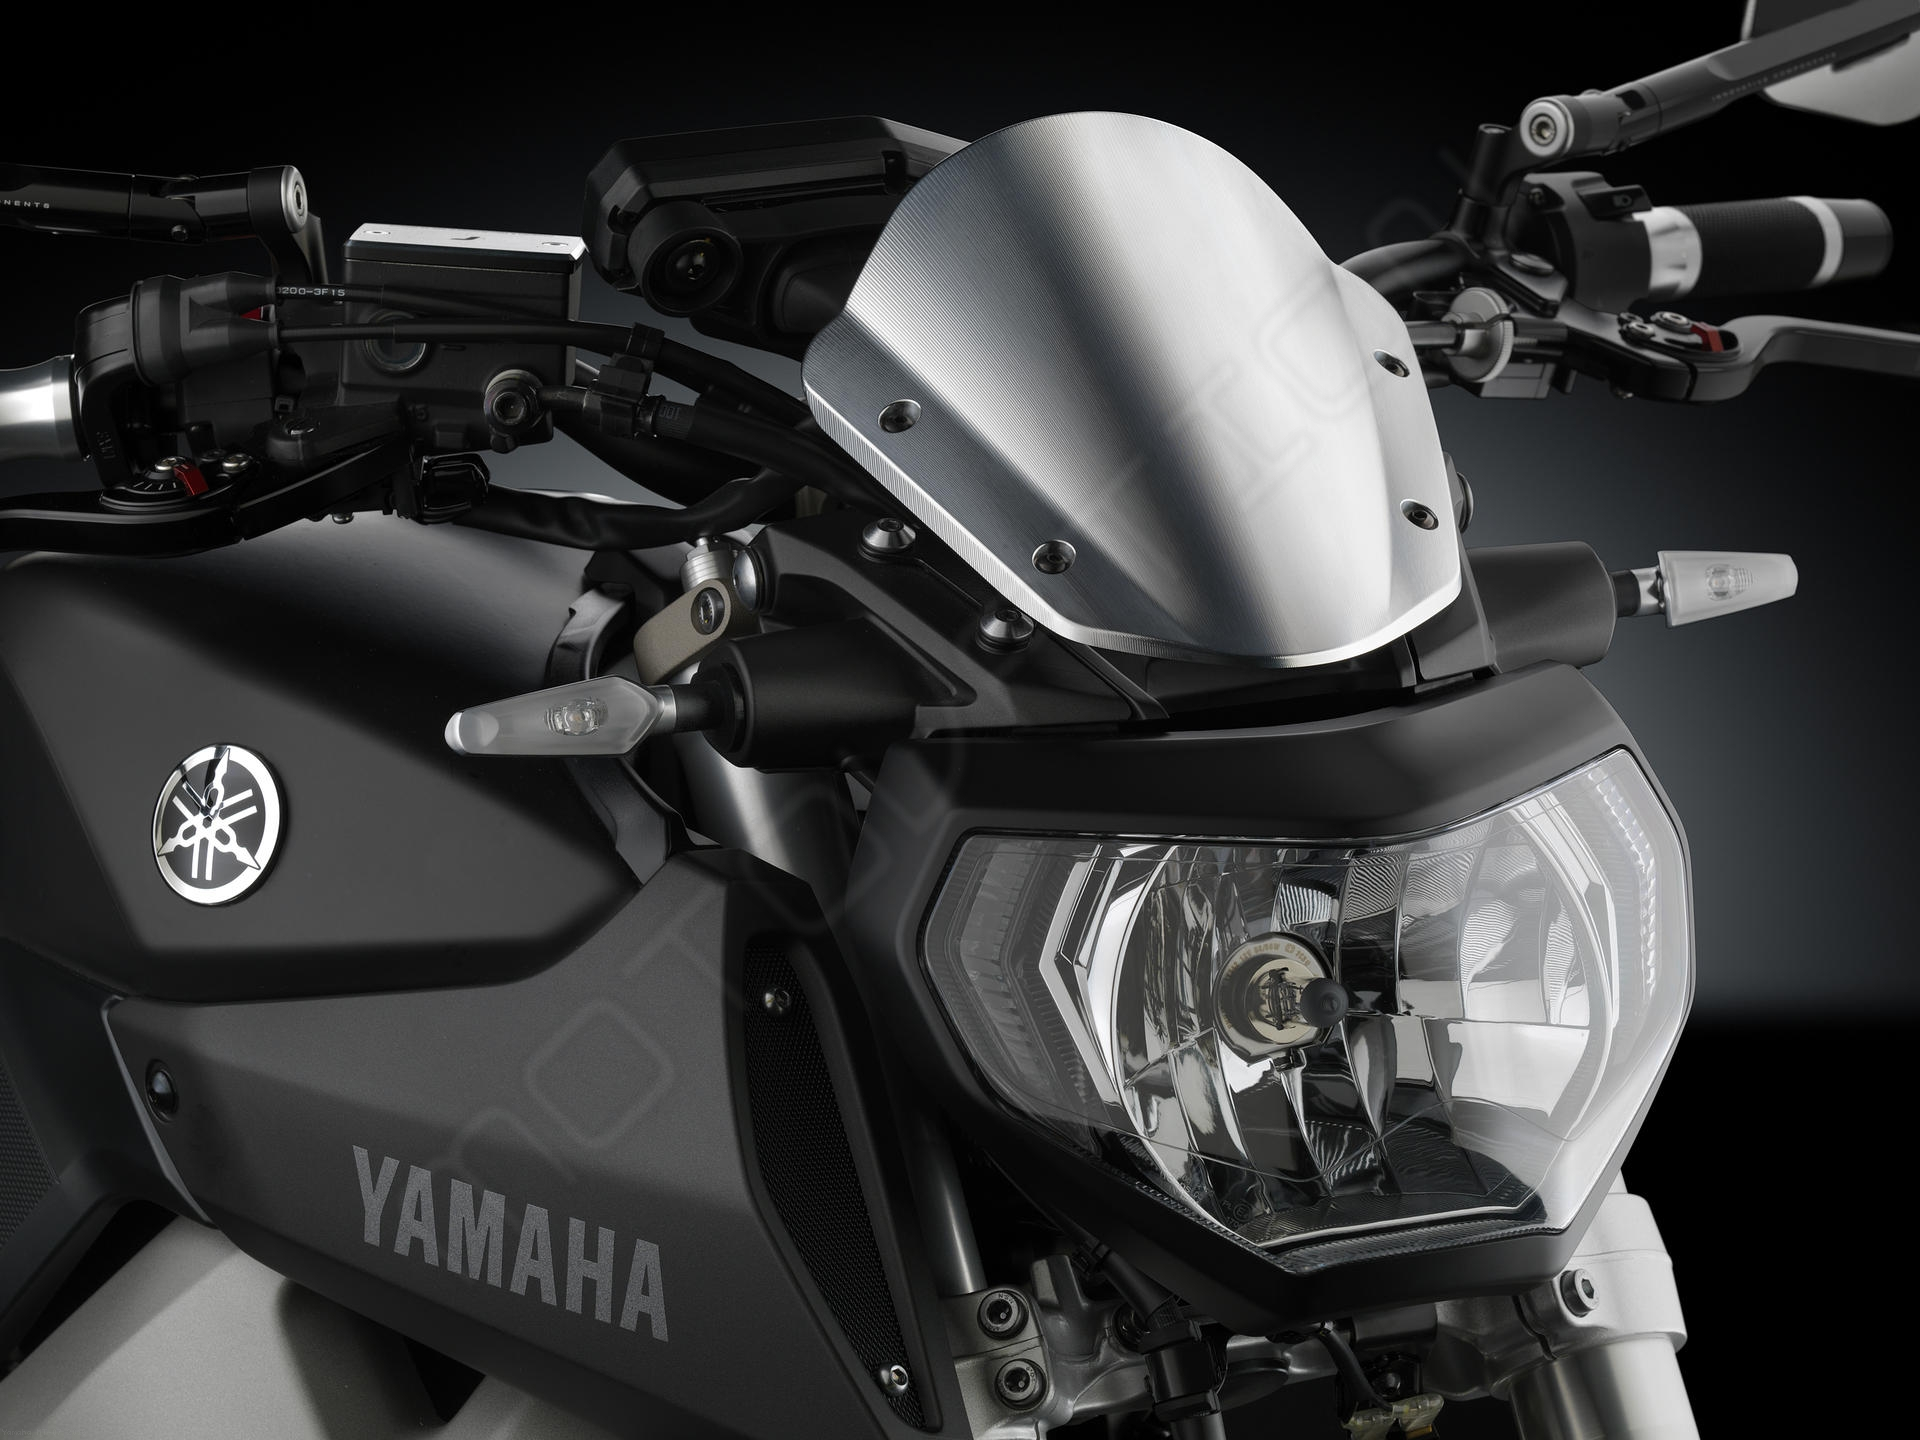 aluminum headlight fairing by rizoma yamaha mt 07 2016